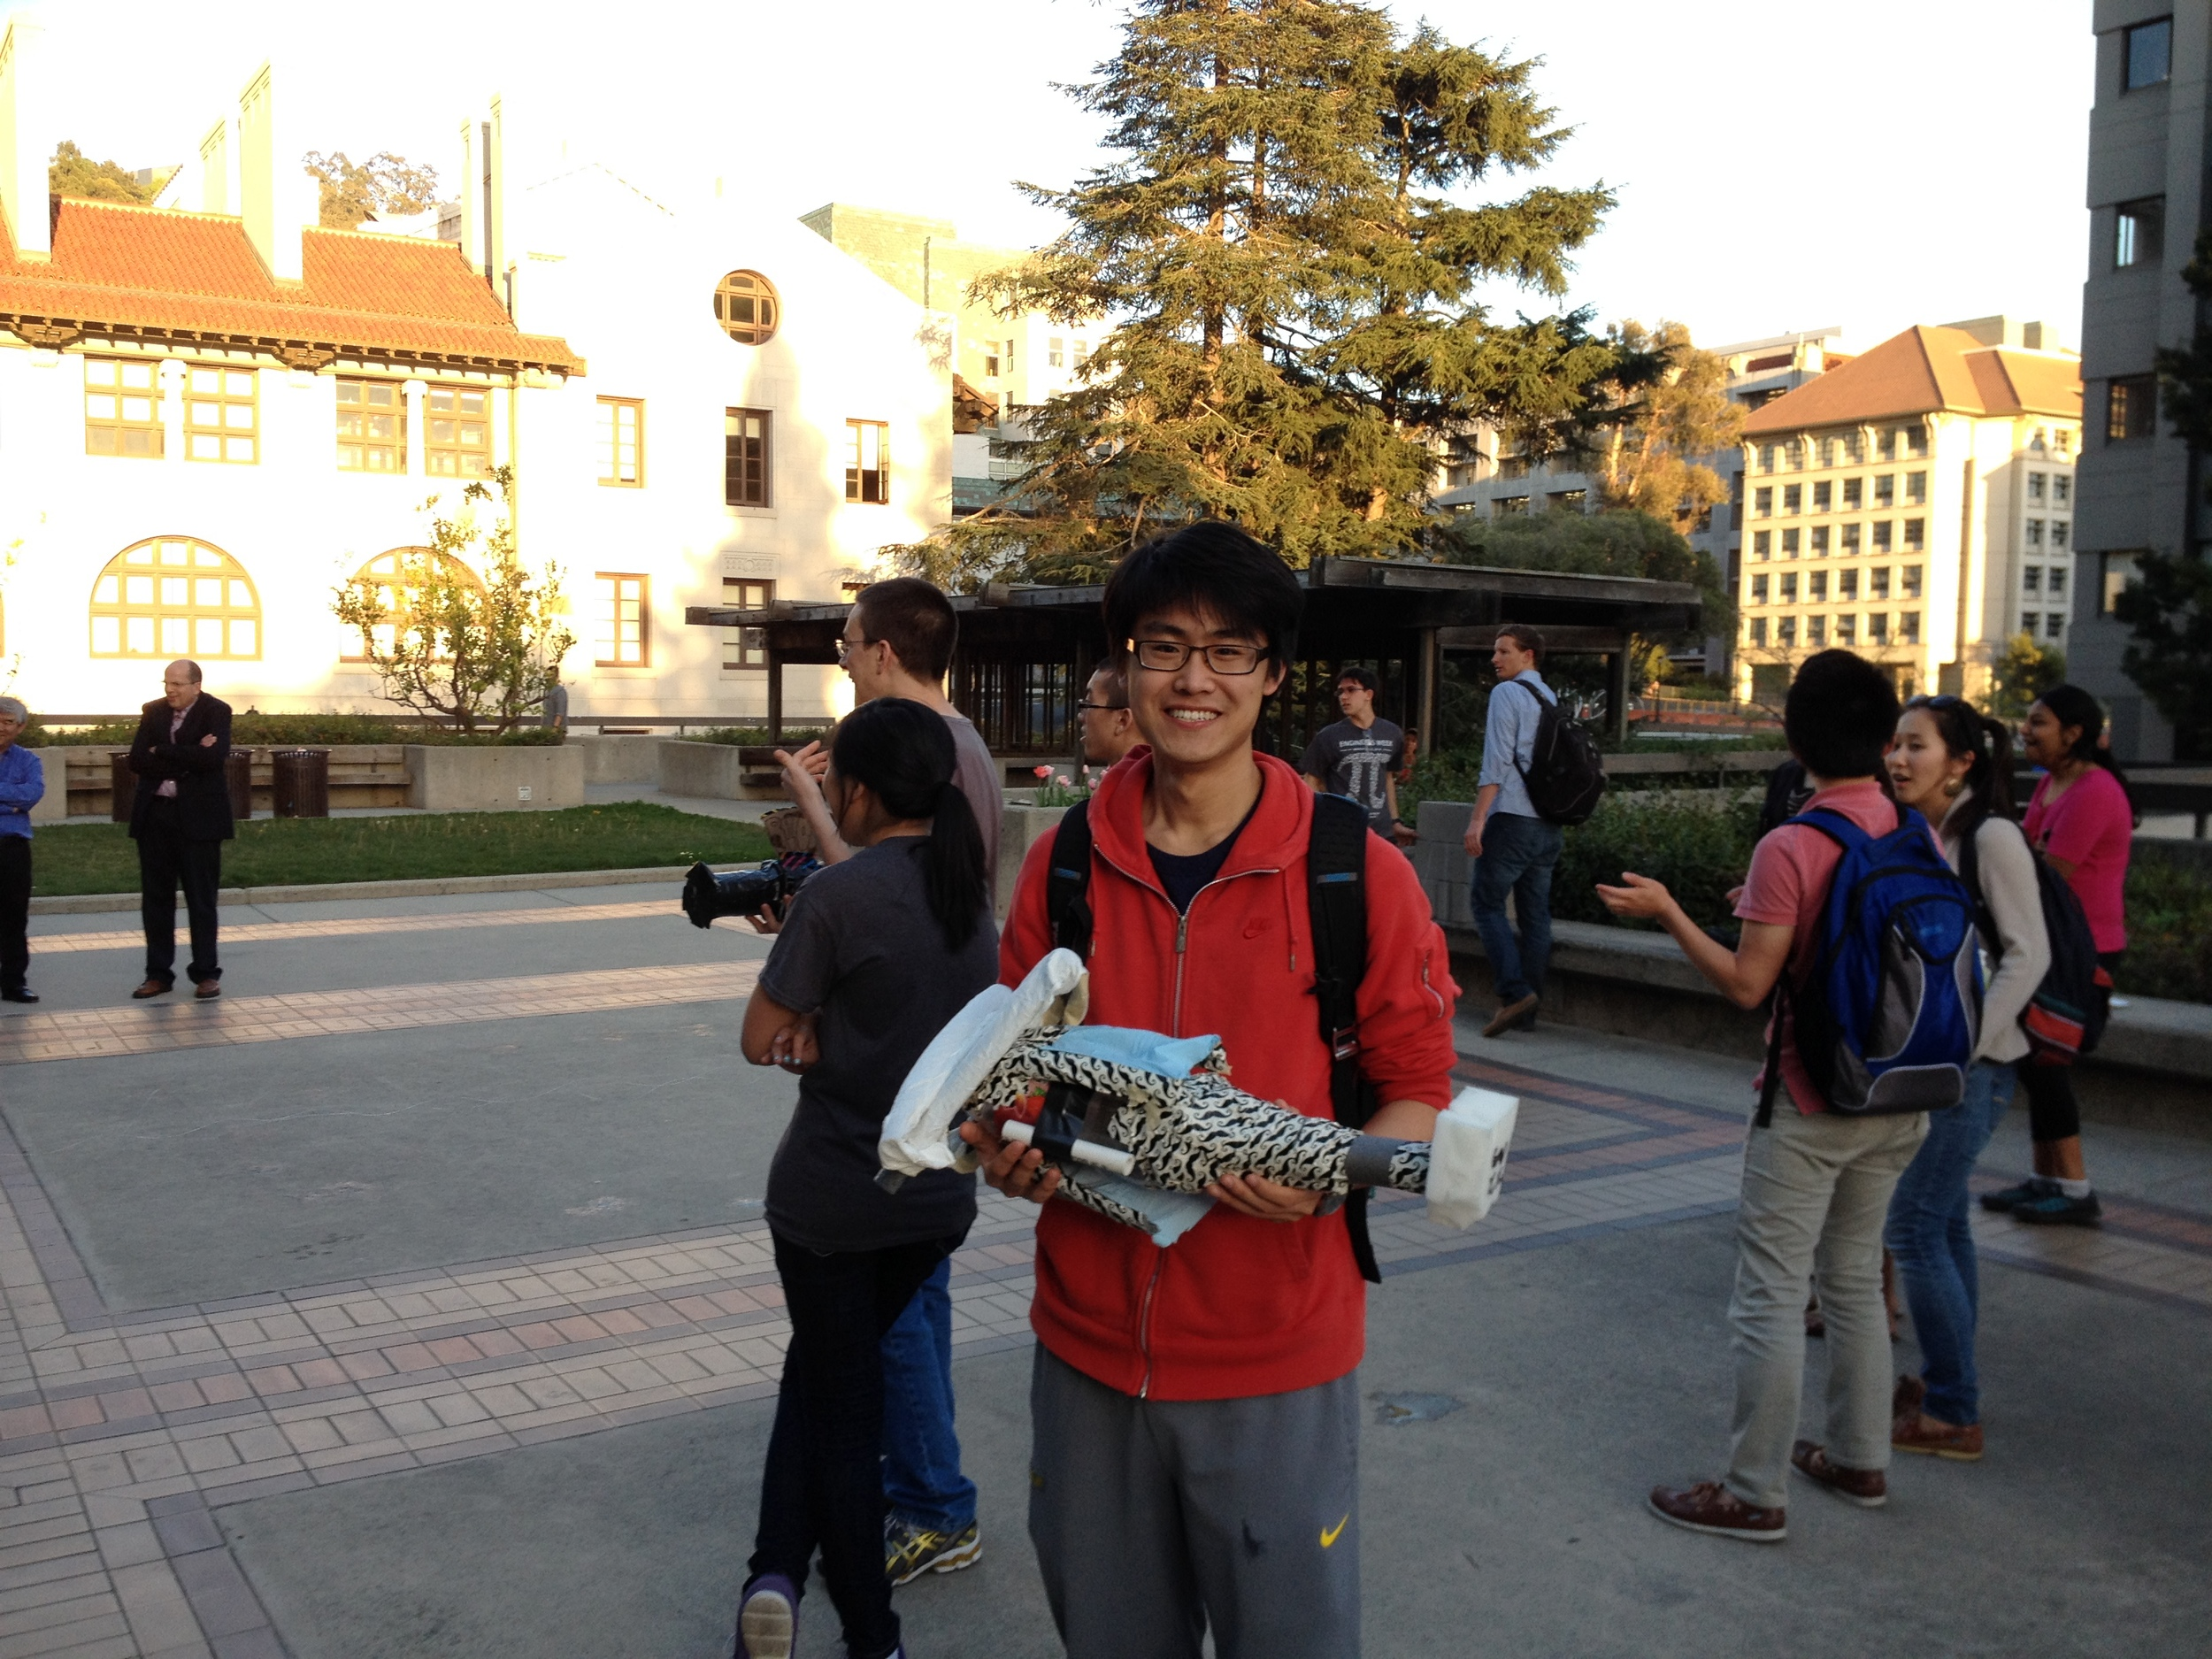 Mustache Missile Ship - UC Berkeley Engineering Week 2014 Design and Build Winning Team